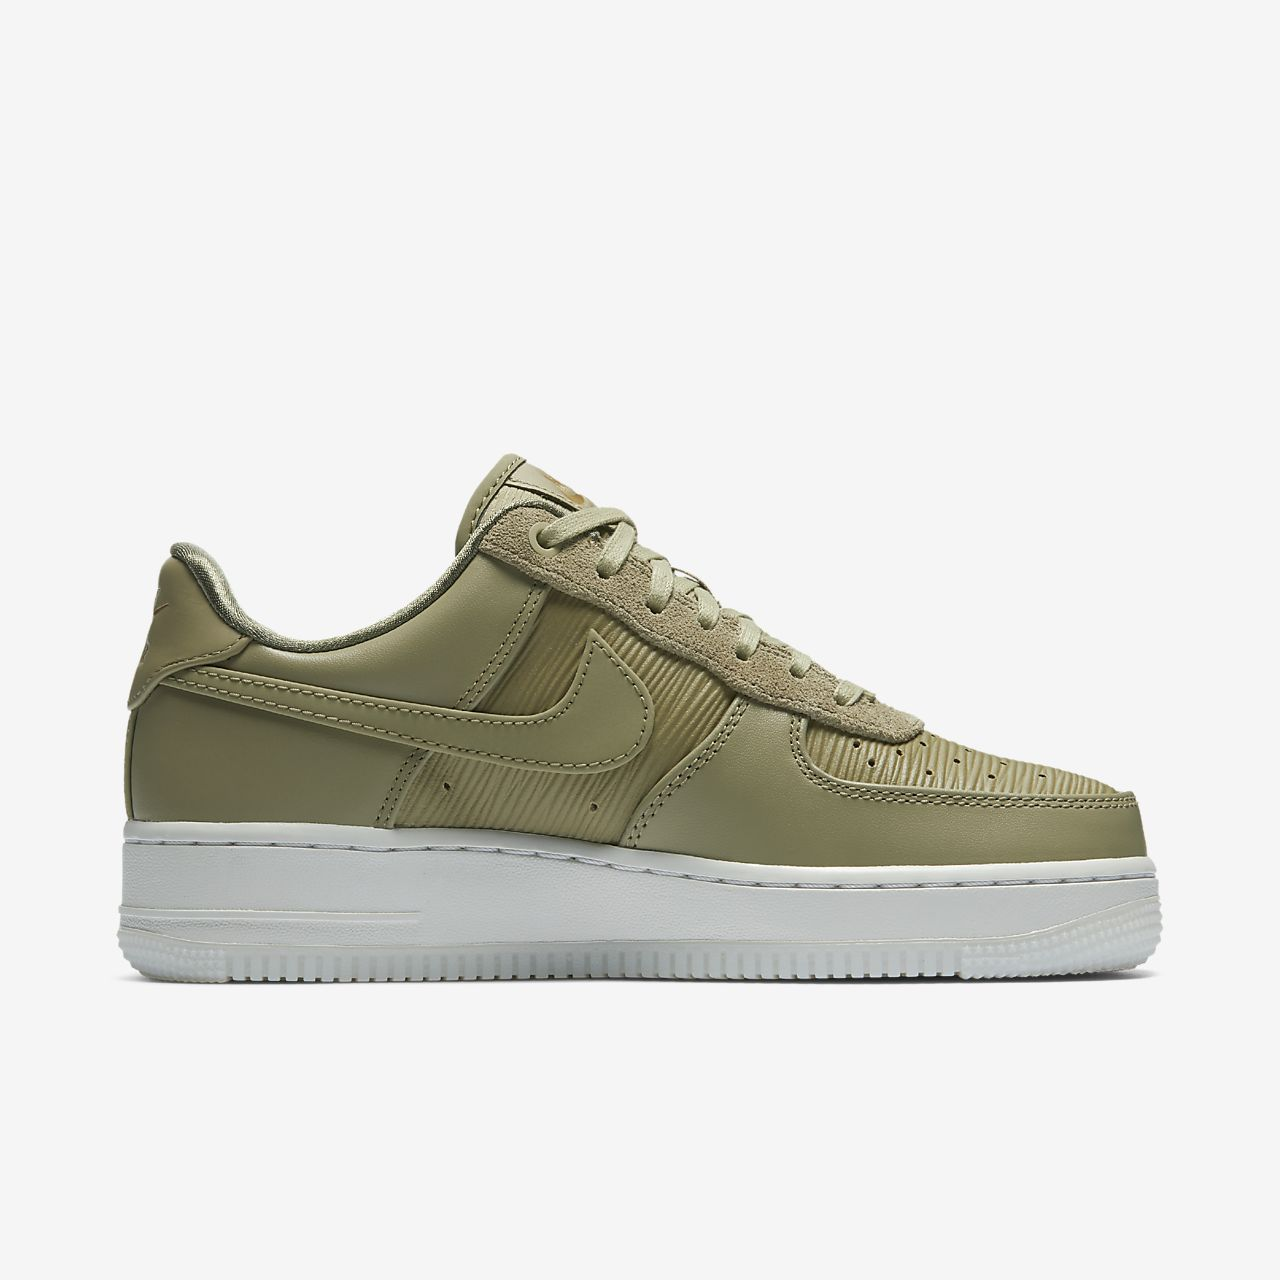 air force 1 khaki and white nz